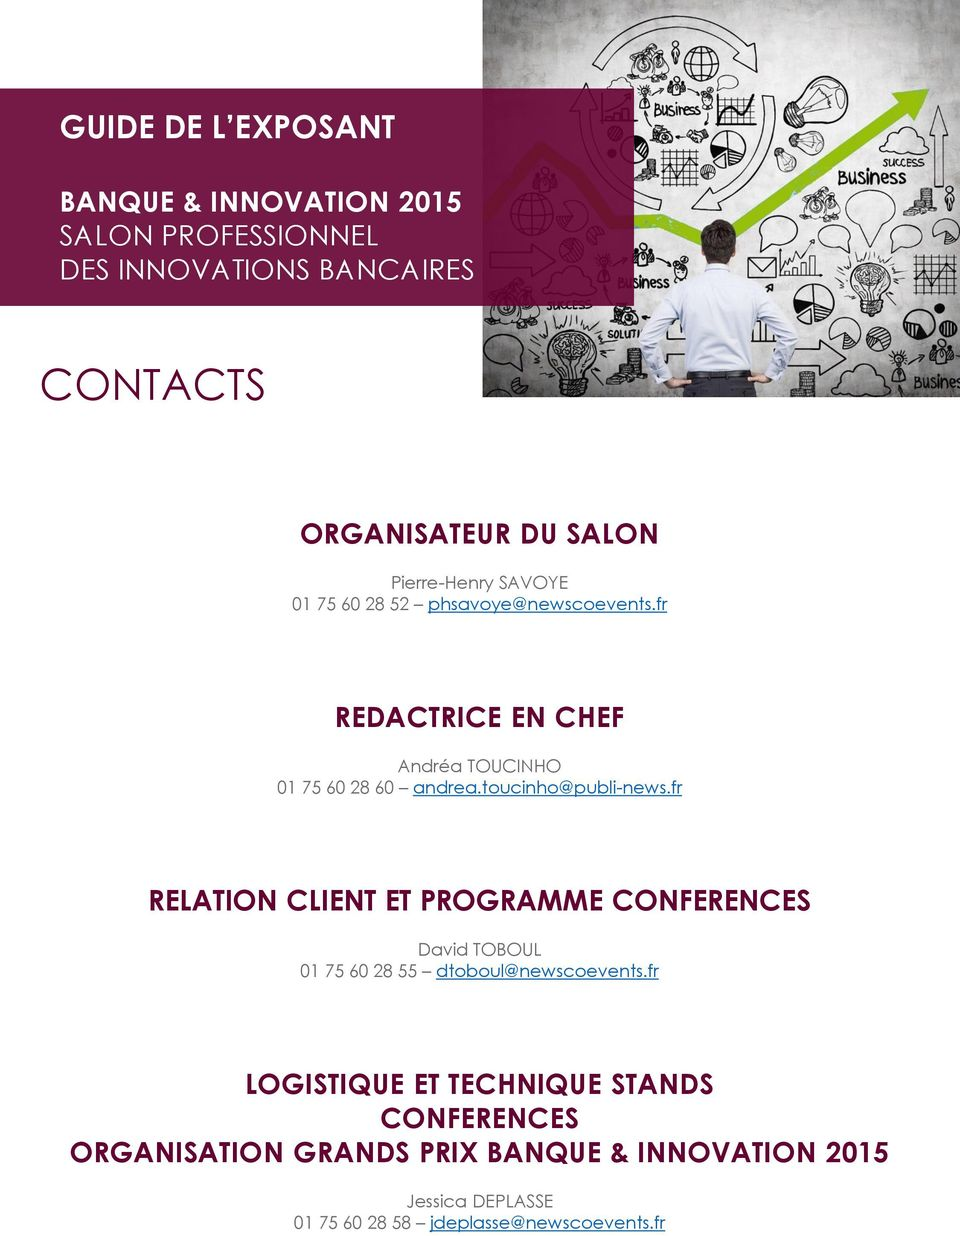 fr RELATION CLIENT ET PROGRAMME CONFERENCES David TOBOUL 01 75 60 28 55 dtoboul@newscoevents.